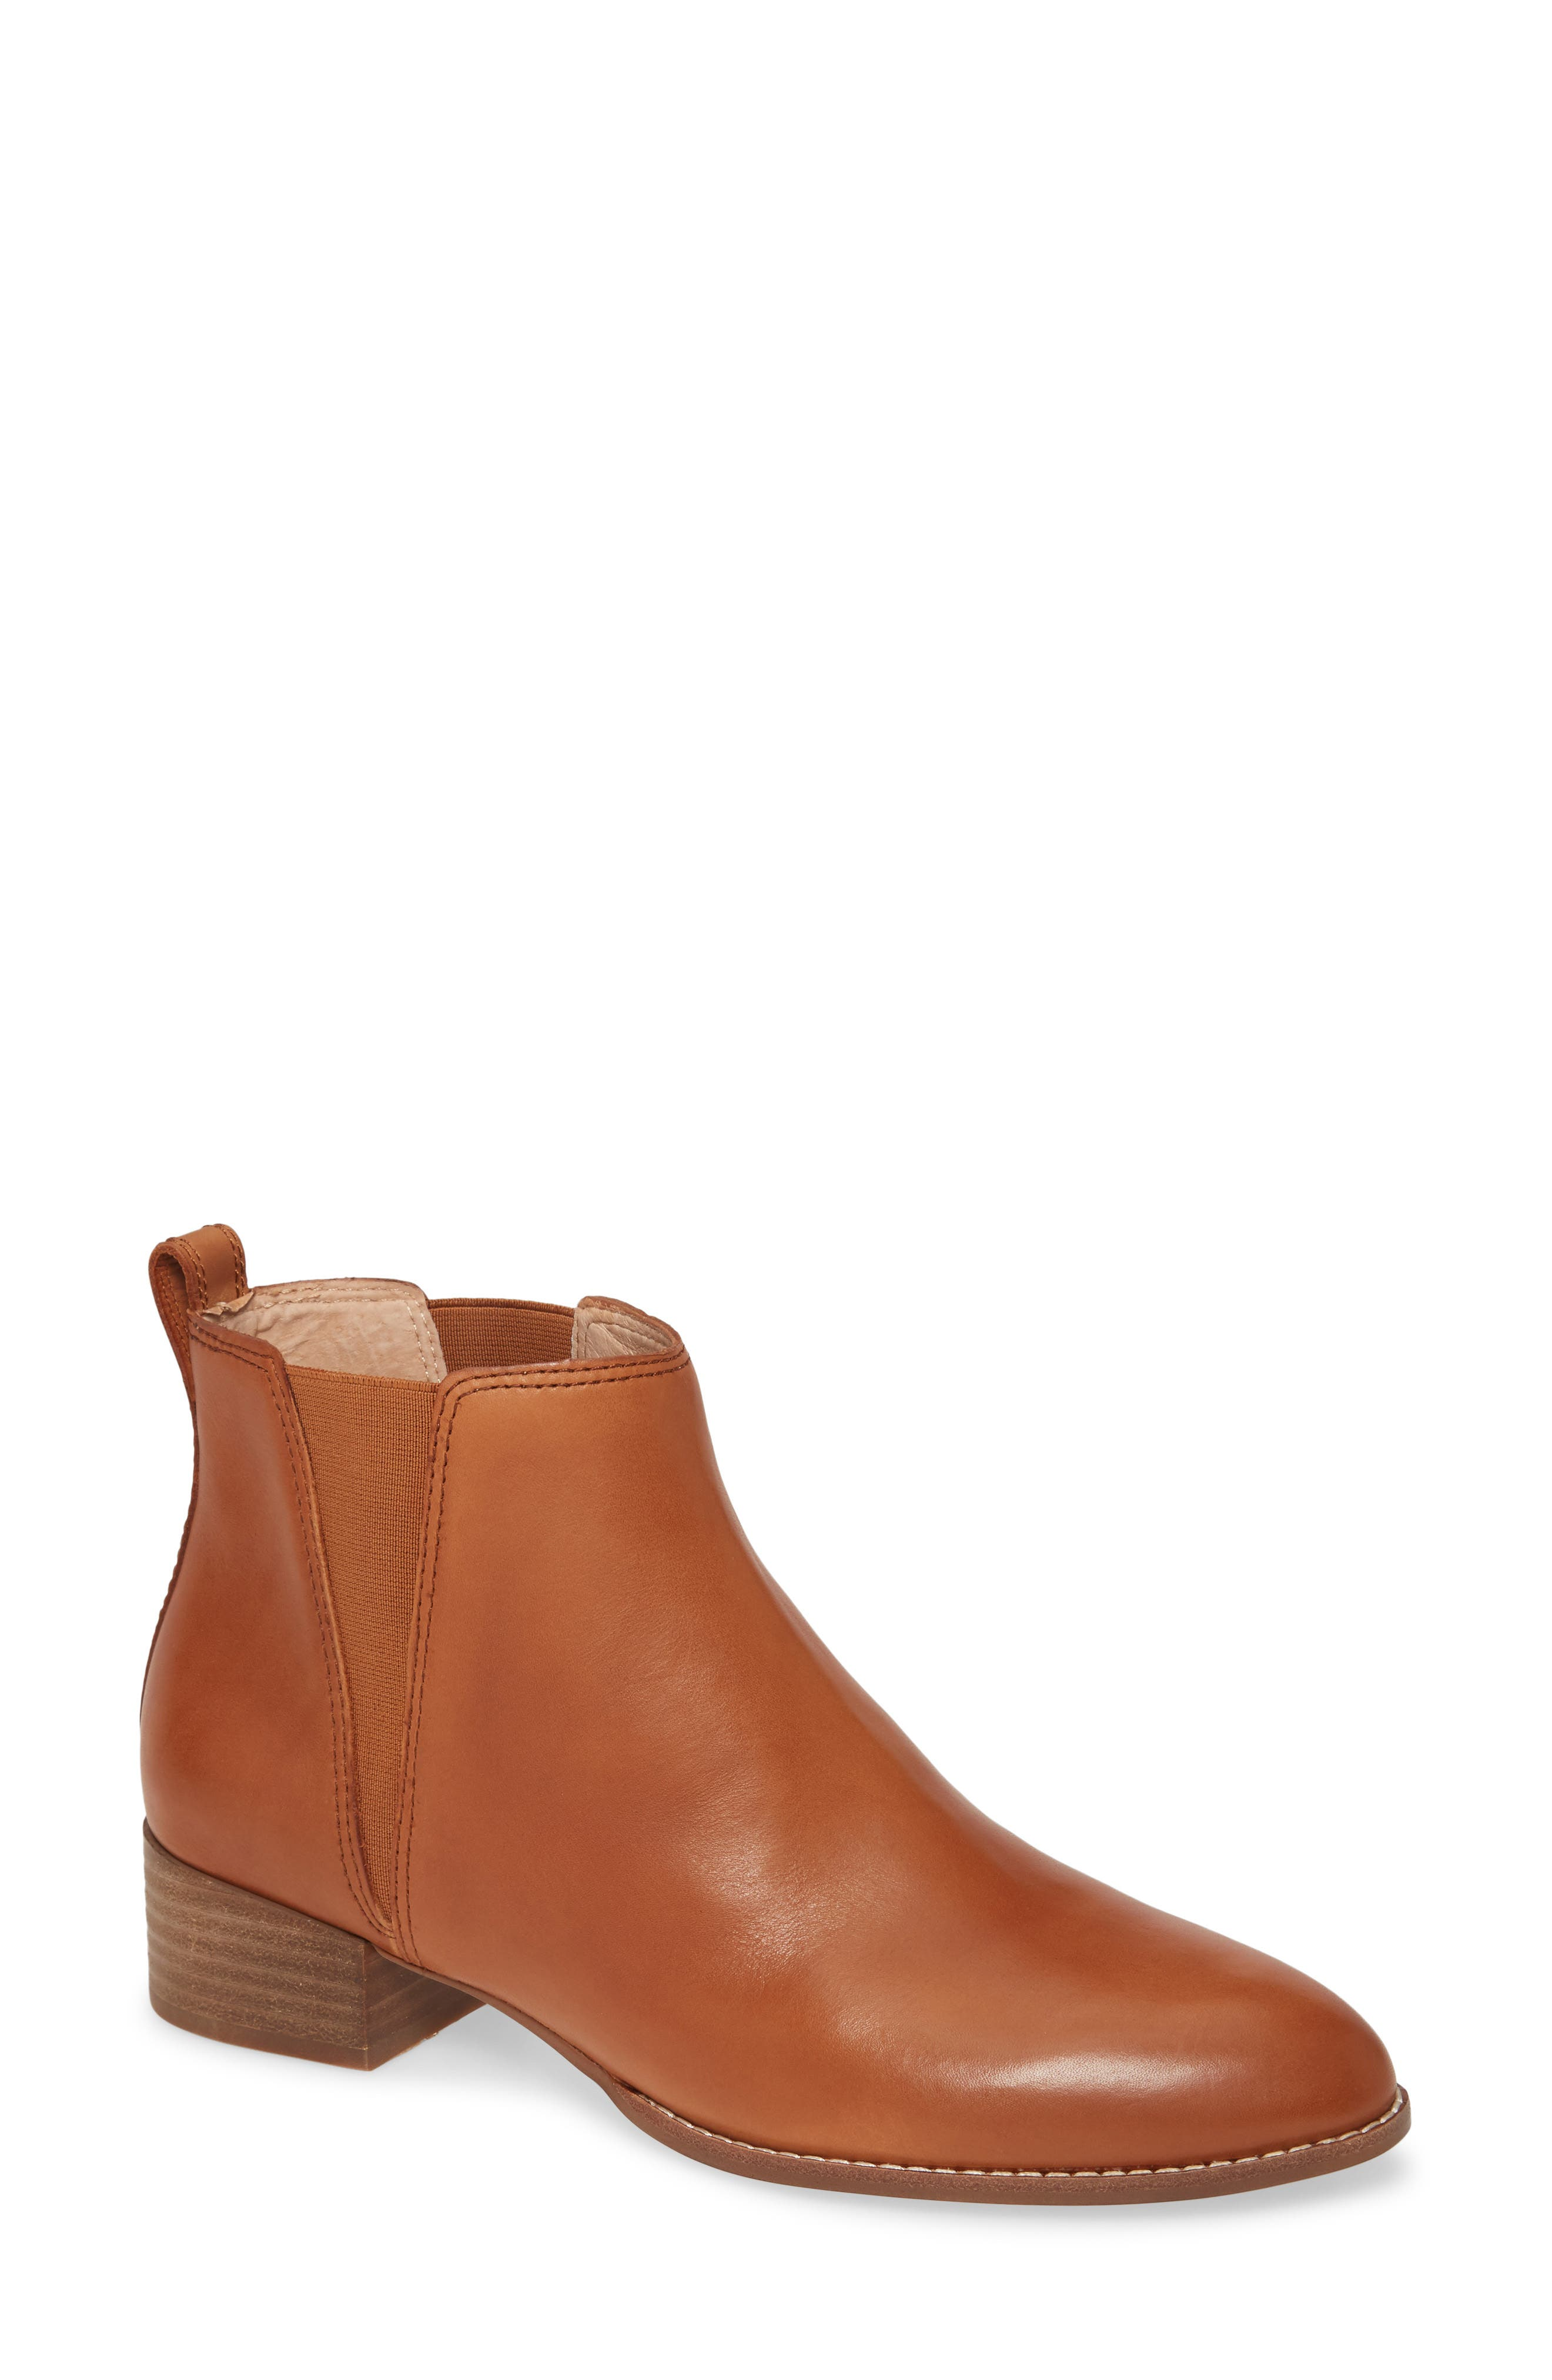 With a rounded toe and stacked heel that\'s perfect for walking around in all day, this Chelsea boot is a wear-everywhere style standby. Style Name: Madewell The Carina Bootie (Women). Style Number: 5906954. Available in stores.